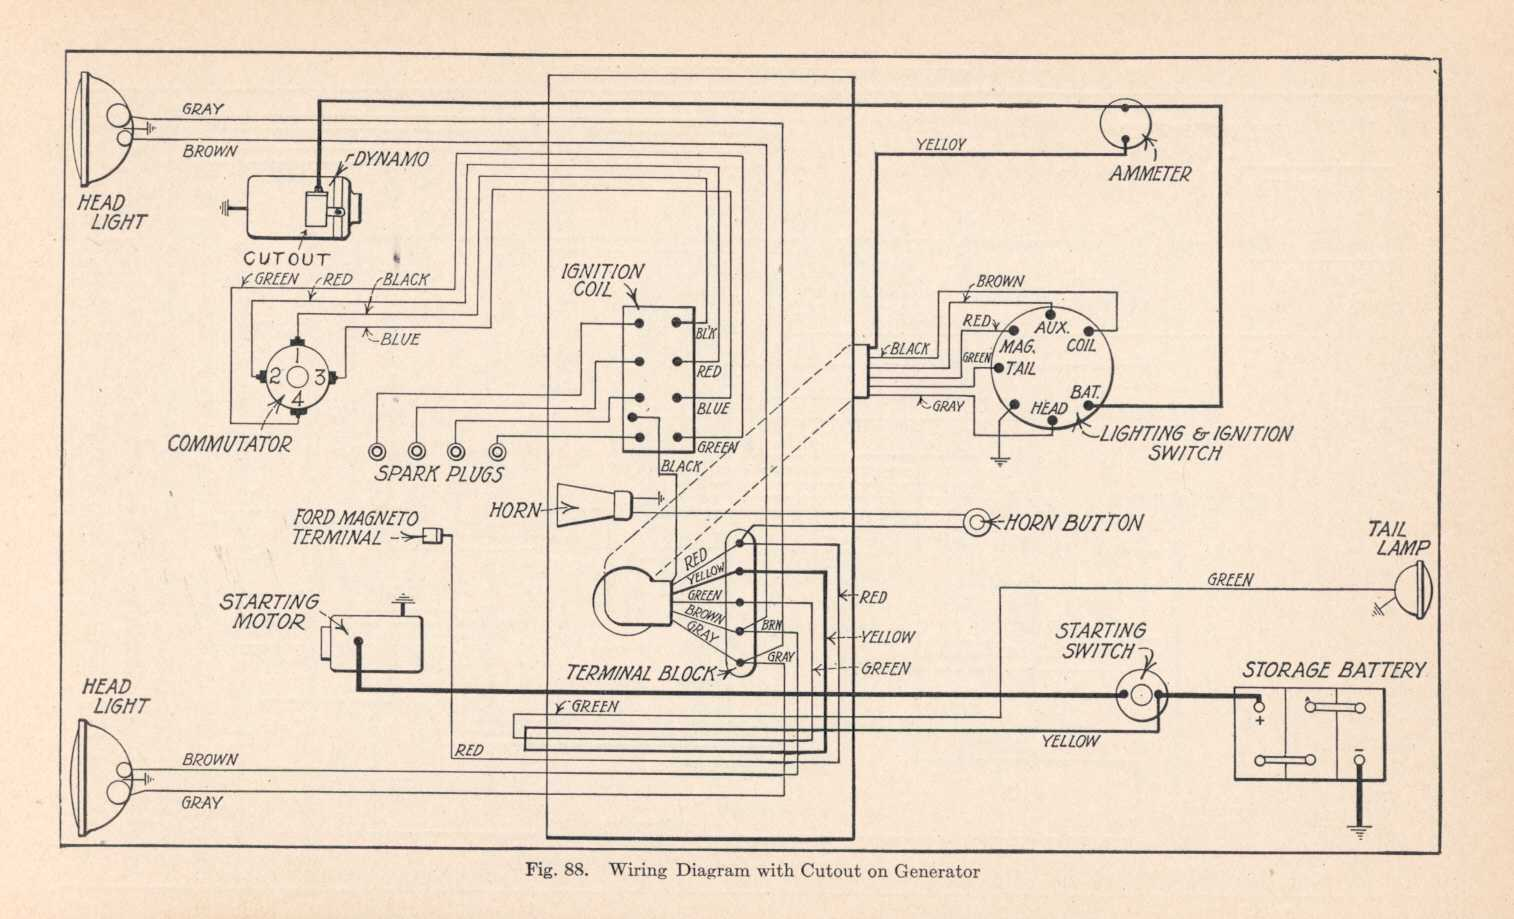 ford model t ignition switch wiring diagram mitsubishi pajero 1994 diagrams forum converting oil lamps to electric